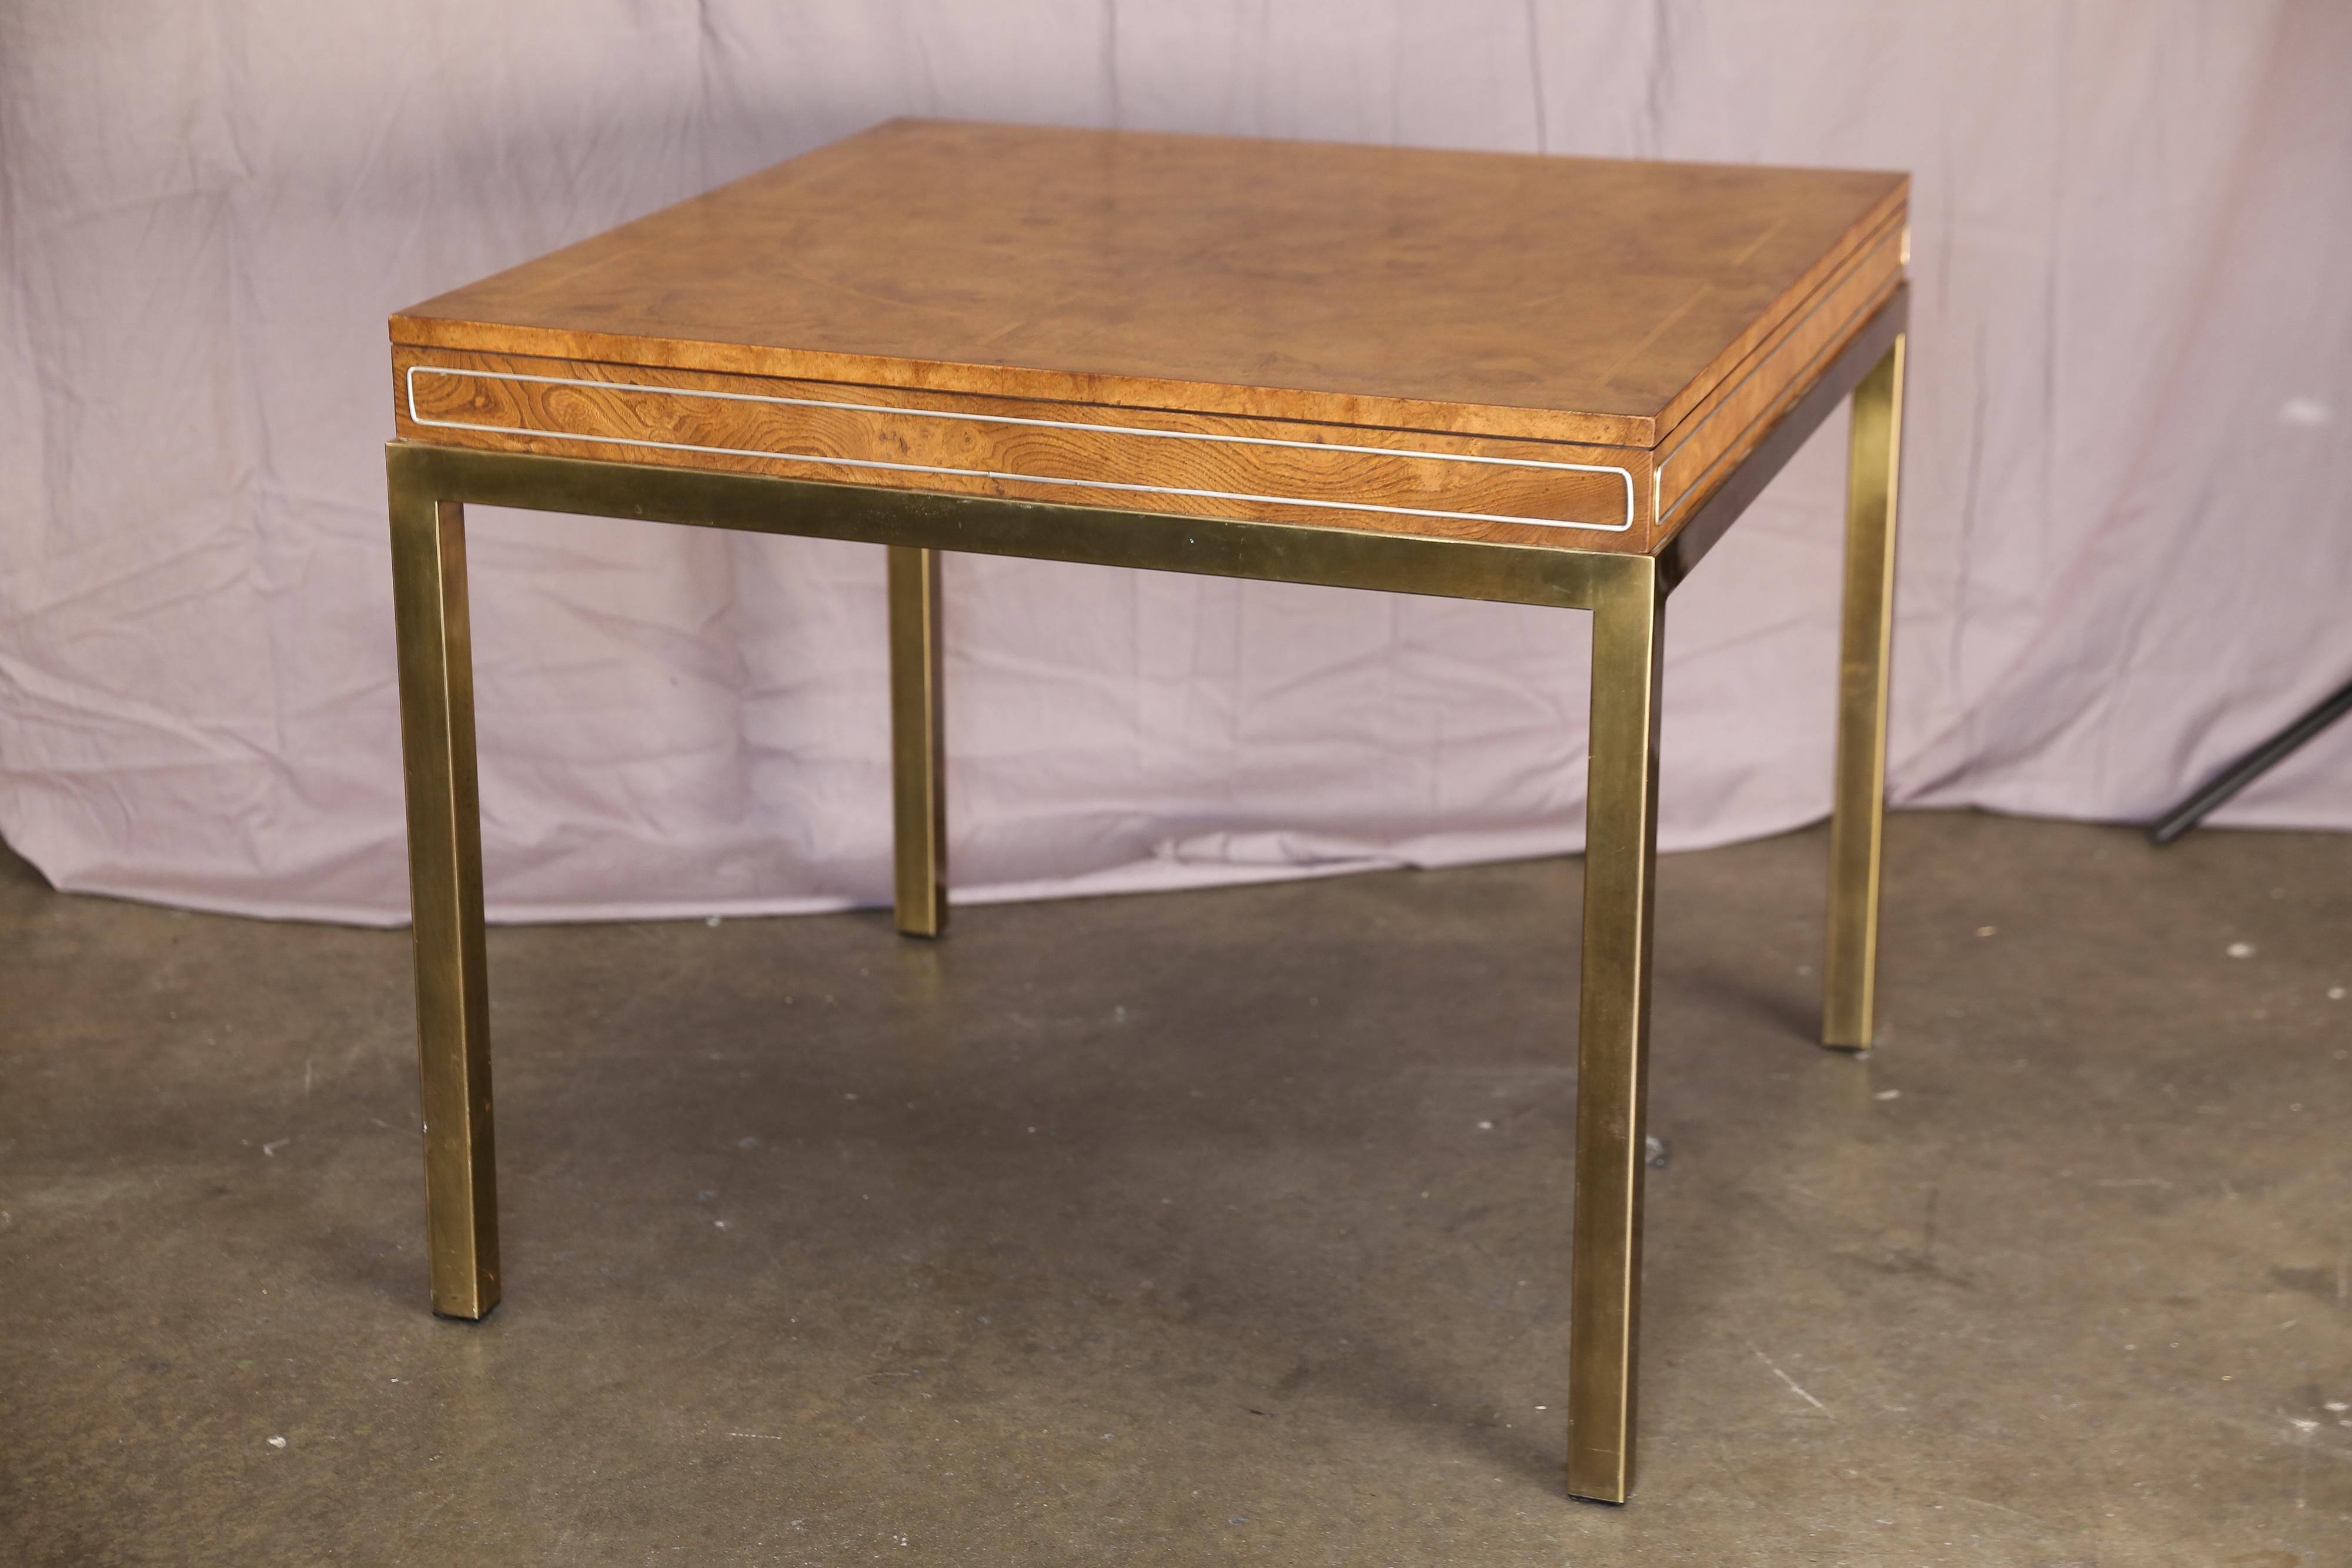 Merveilleux Mid Century Modern Game Table For Sale   Image 10 Of 10